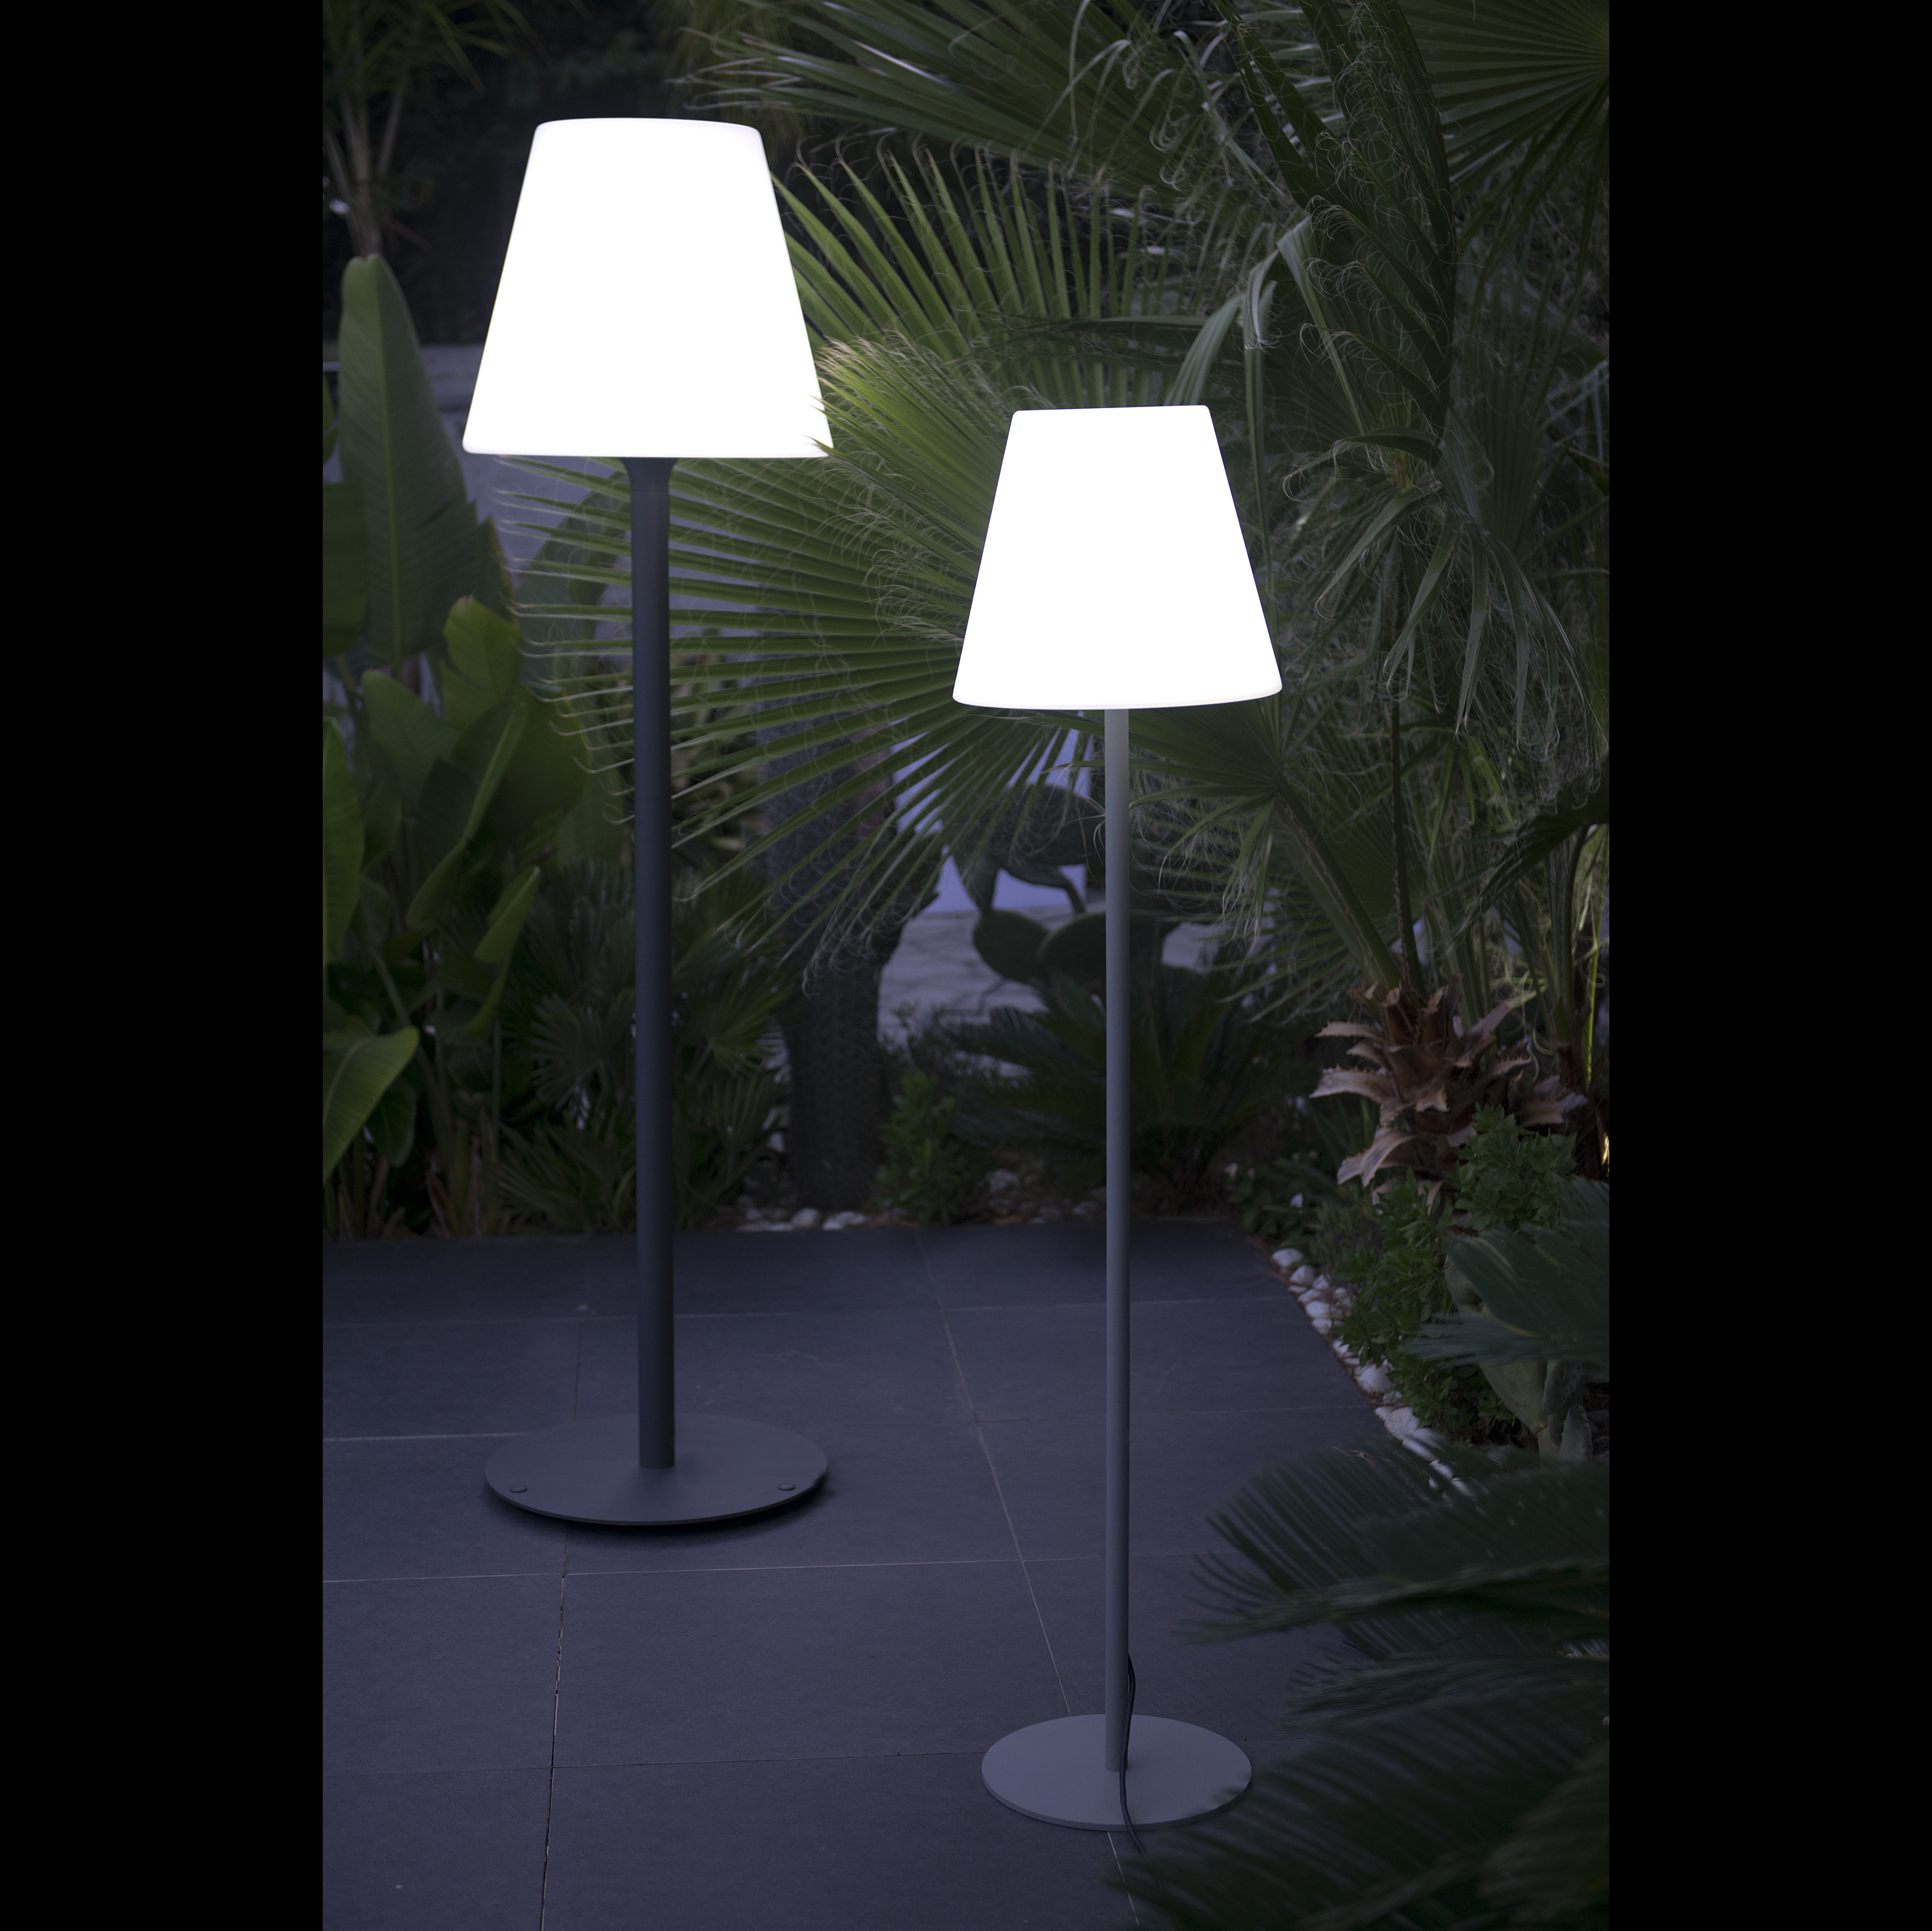 Lampe Terrasse Solaire Lampe Solaire Botanic